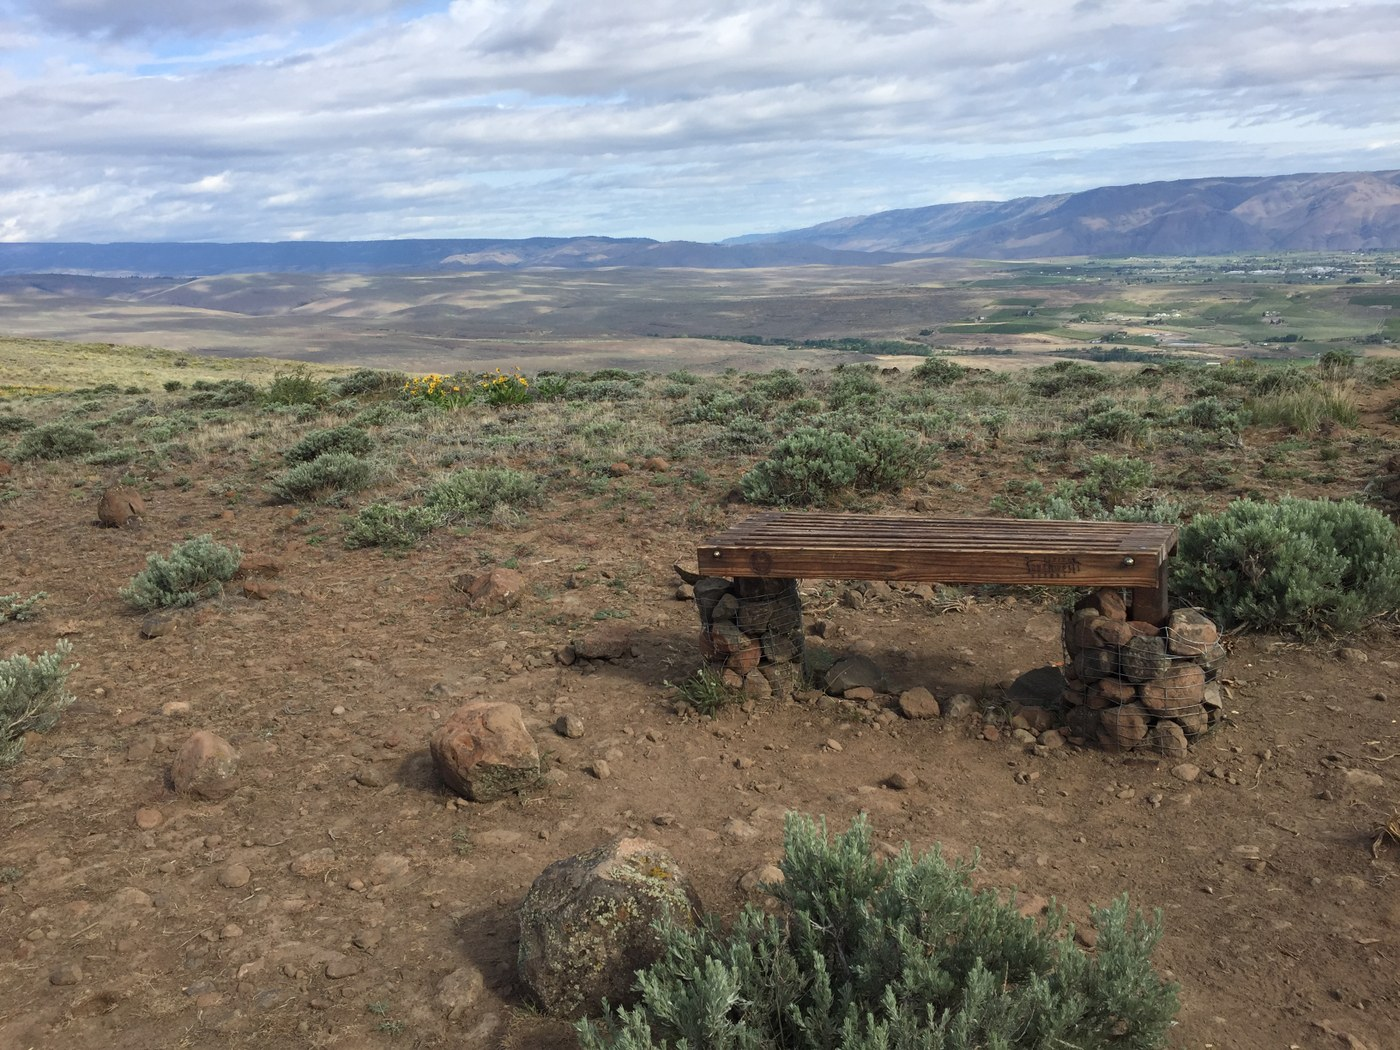 Bench overlooking the ranch. Photo by Henry.